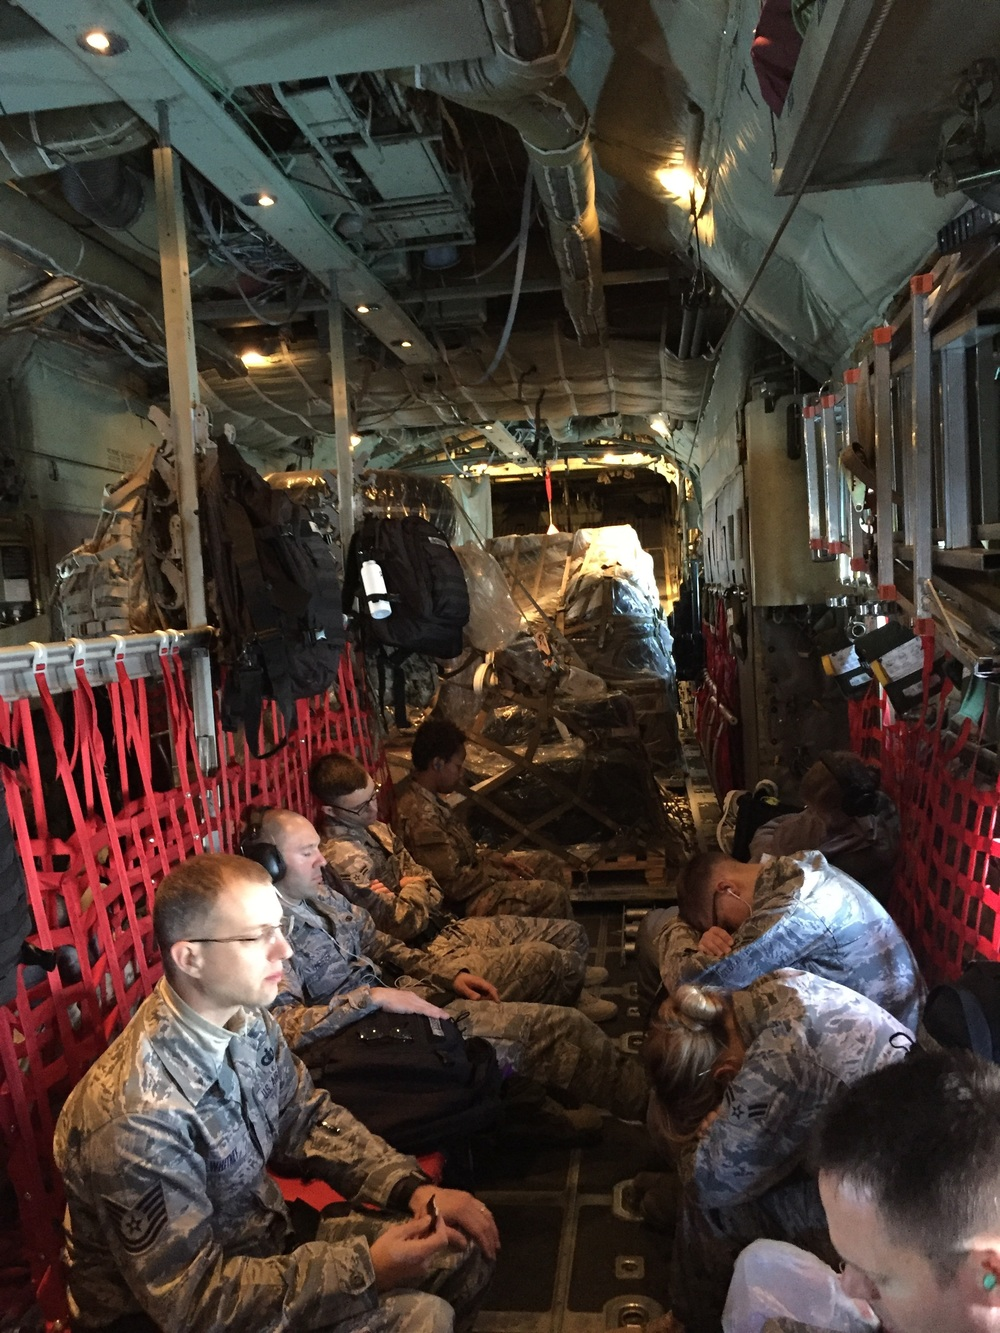 The cozy C130 was very loud...ear plugs are a must!